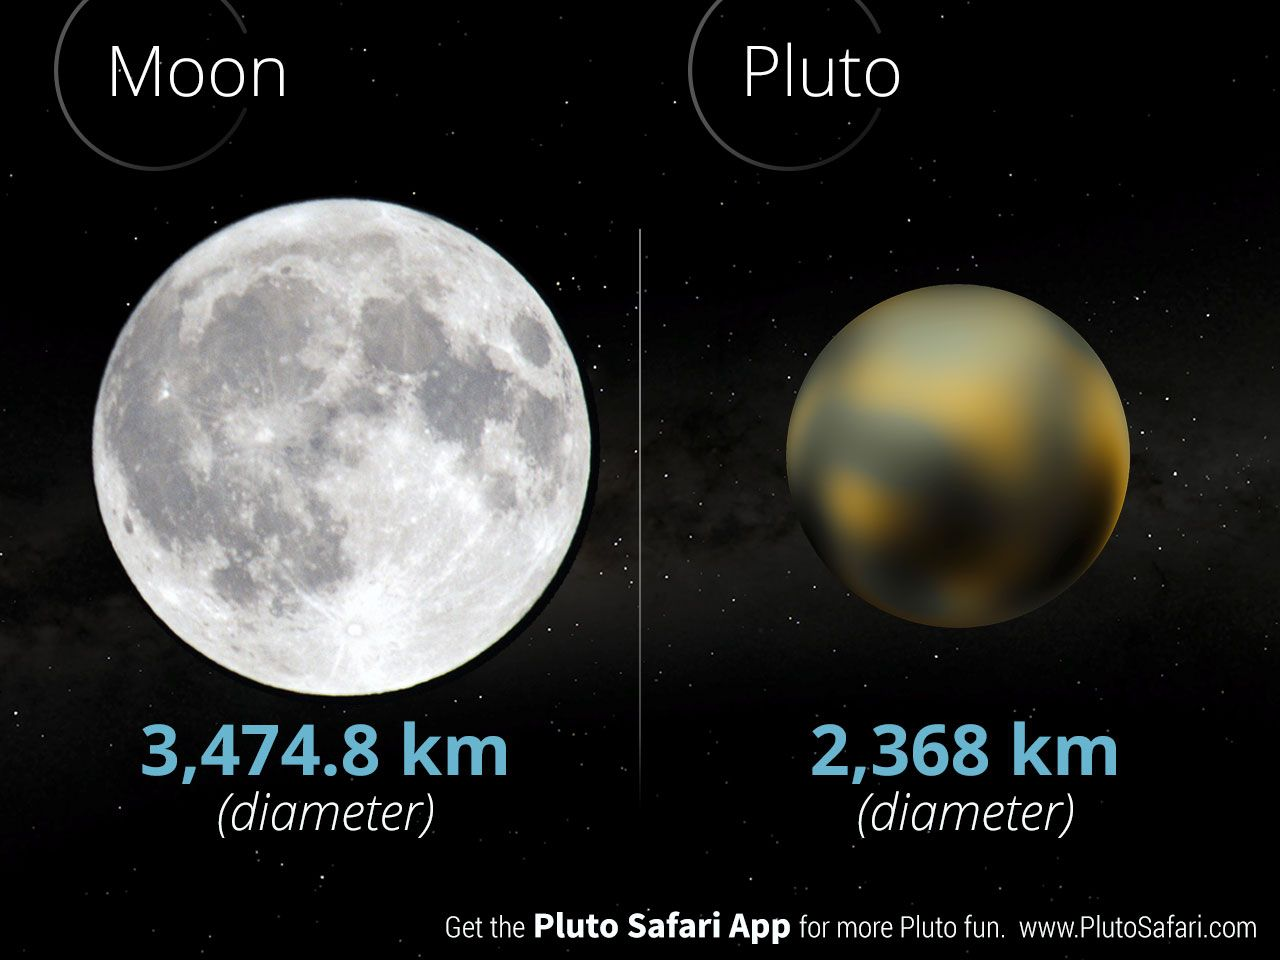 Pluto S Diameter Compared To The Moon